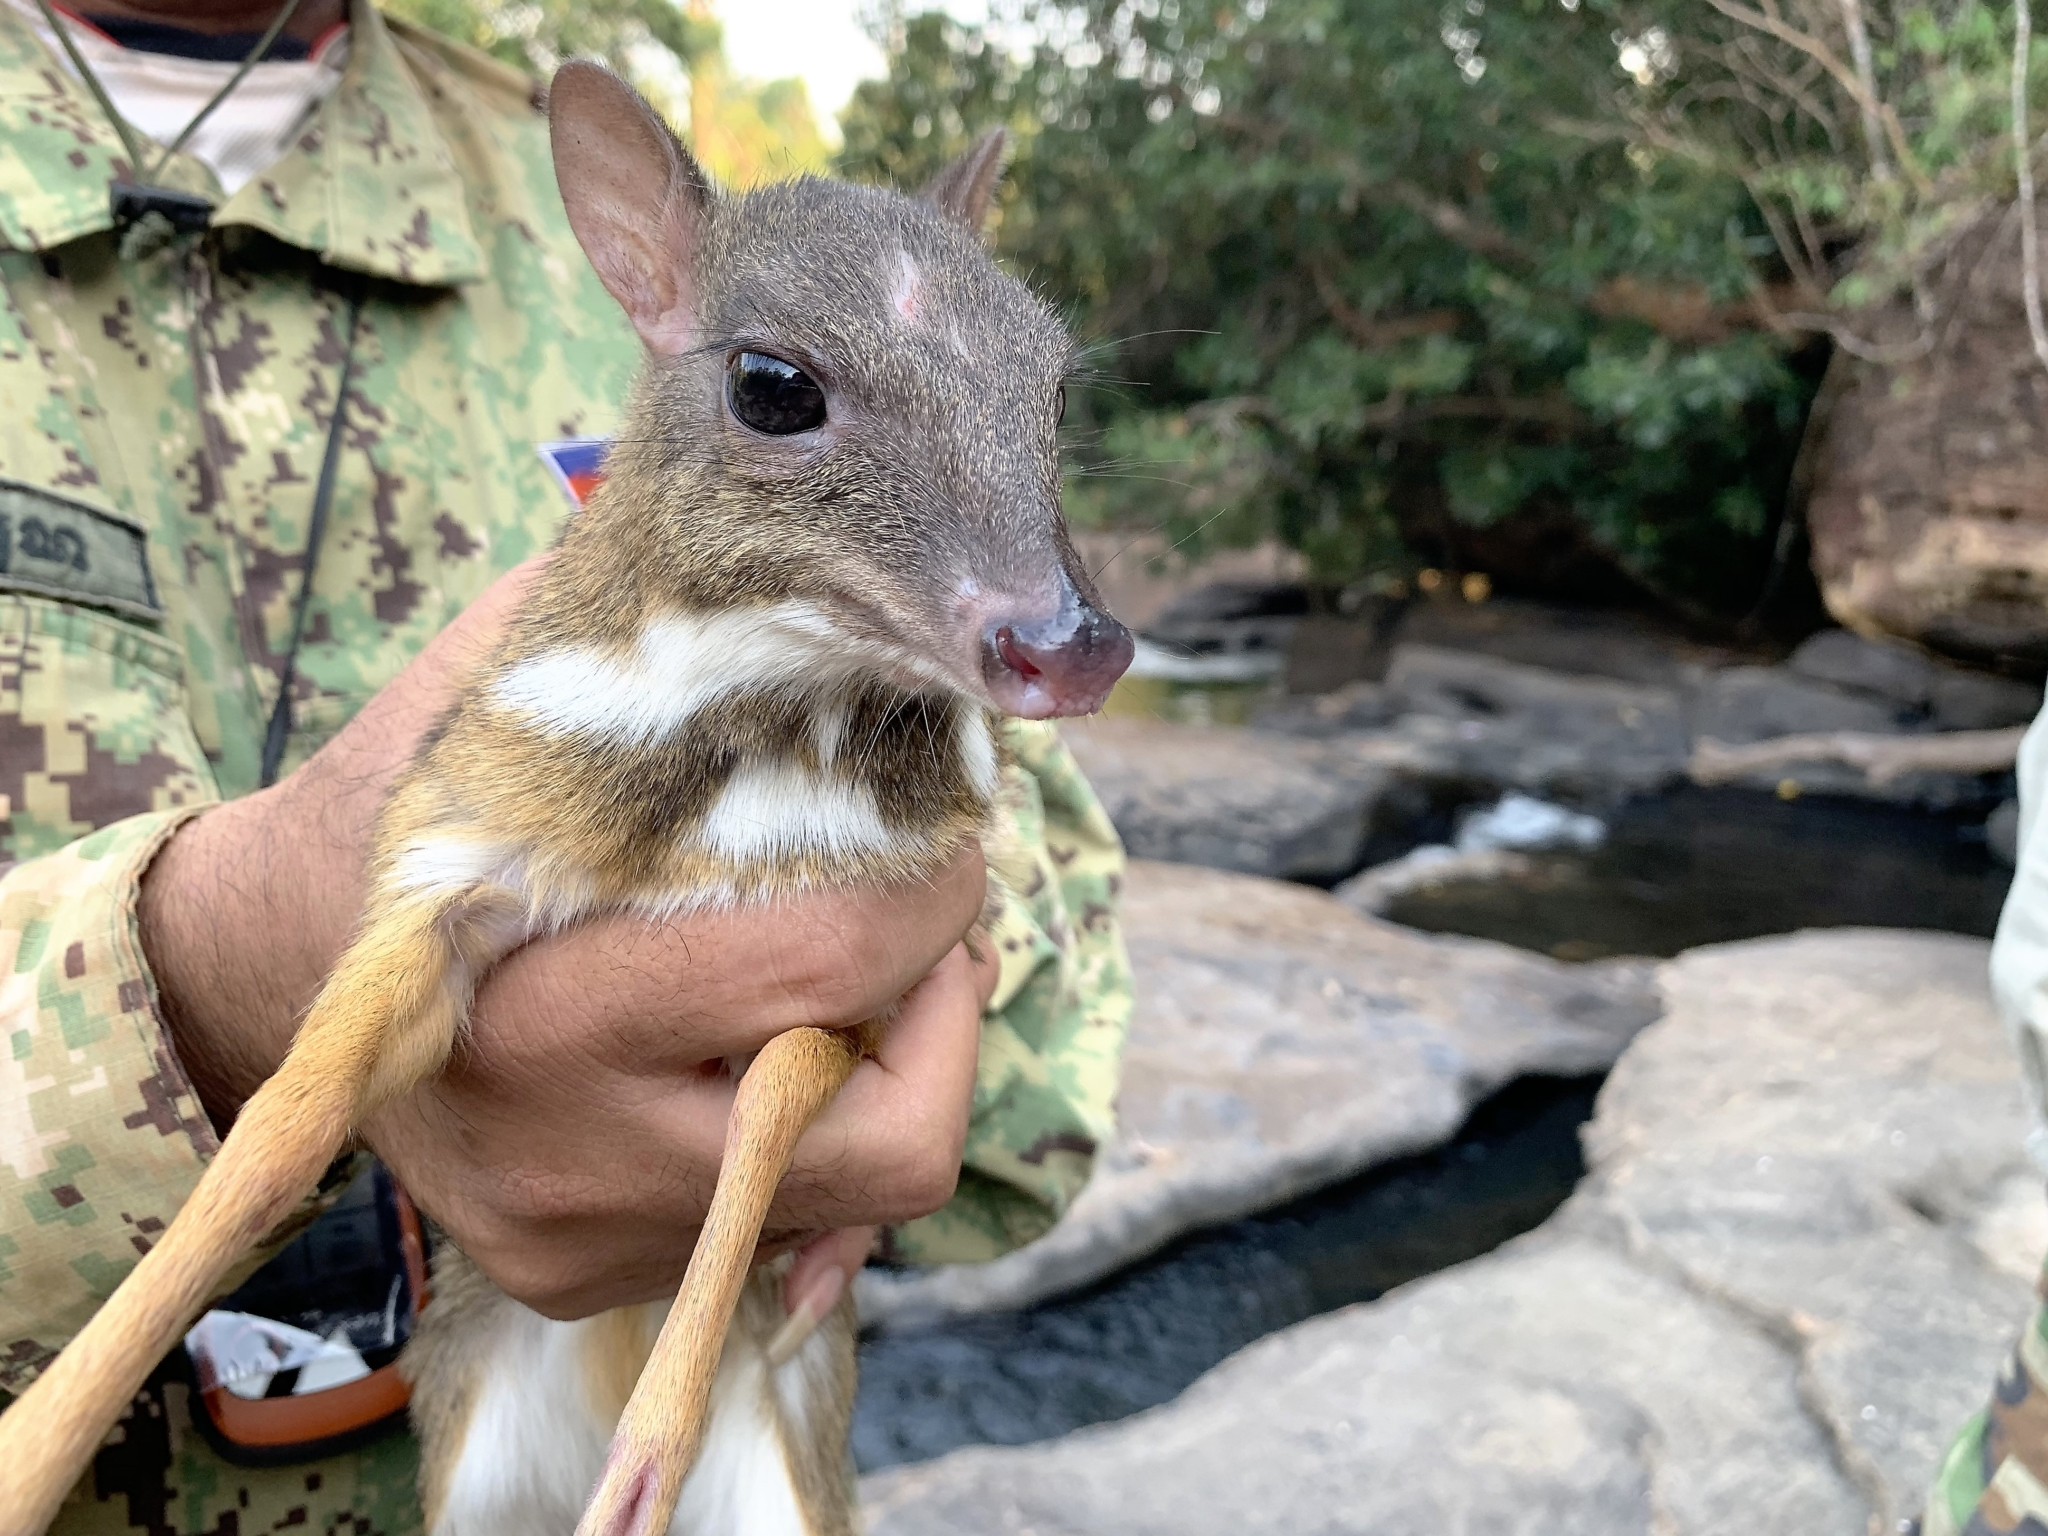 Rangers rescue the smallest deer in the world from a poacher